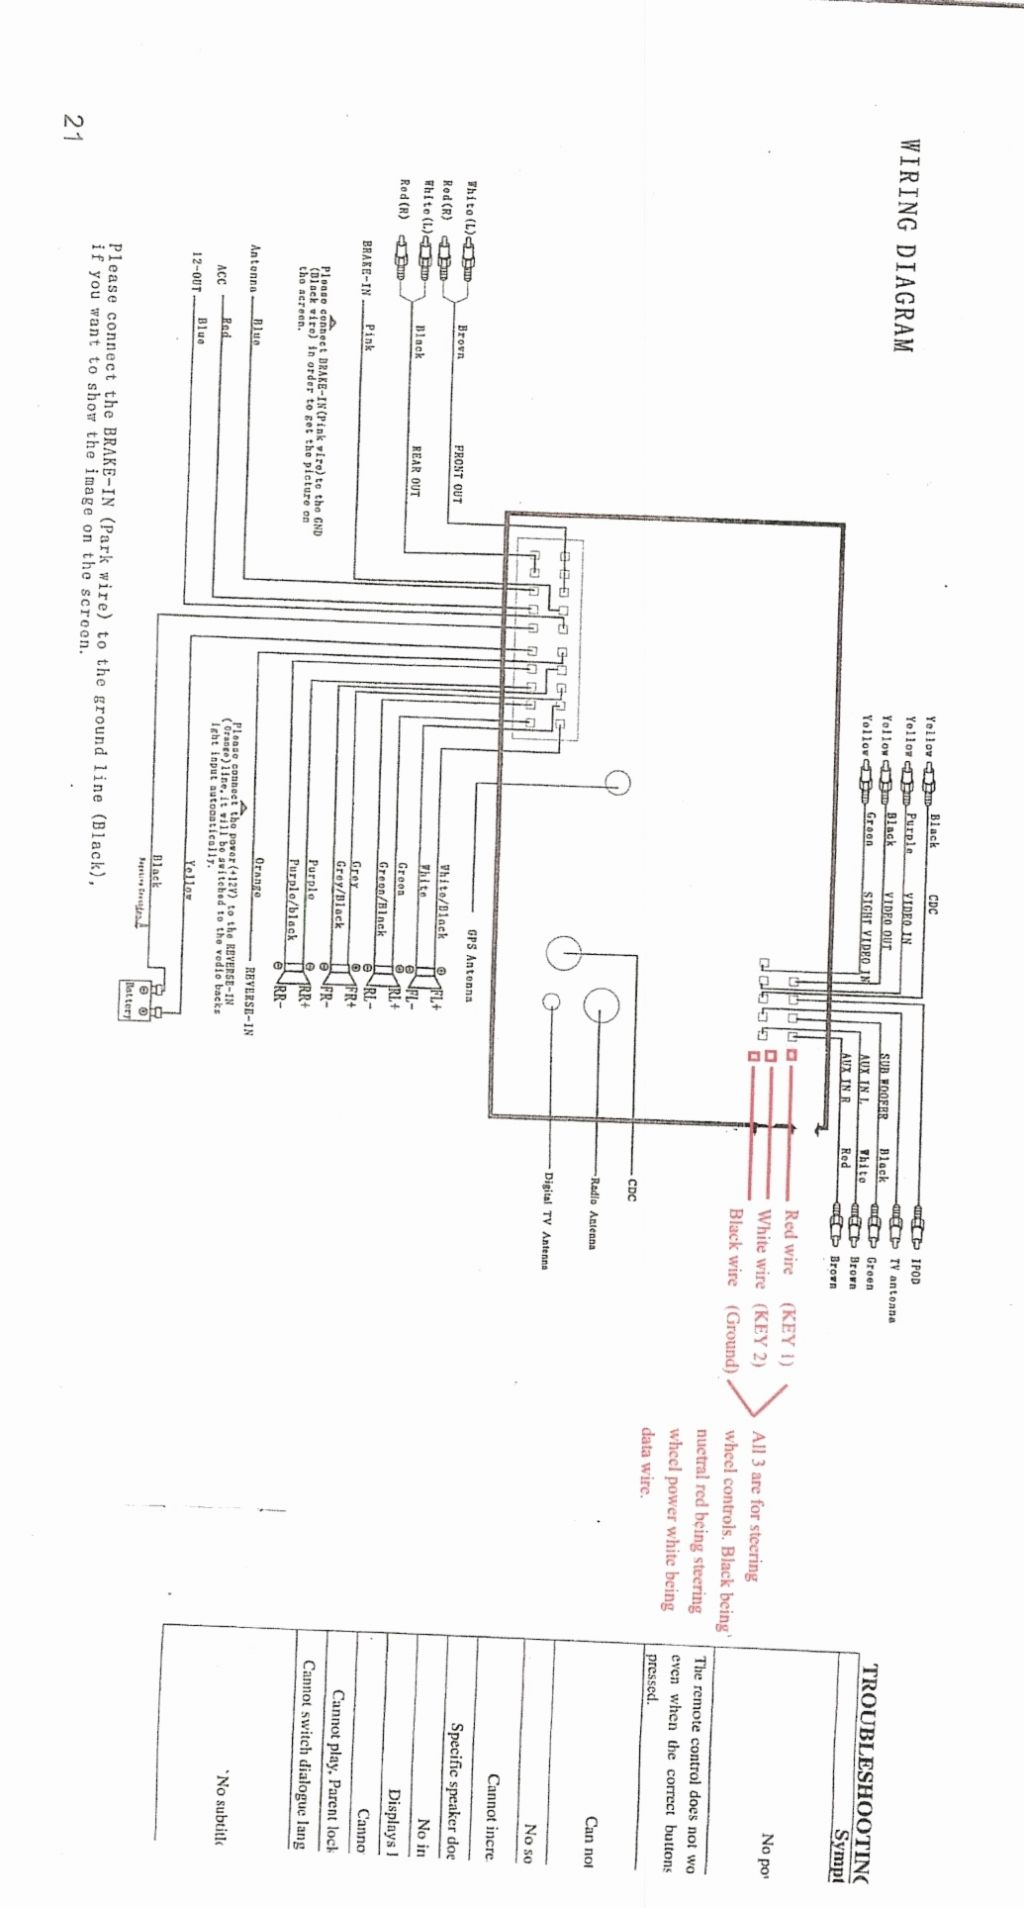 gmos 01 wiring diagram two way switch uk axxess harness library